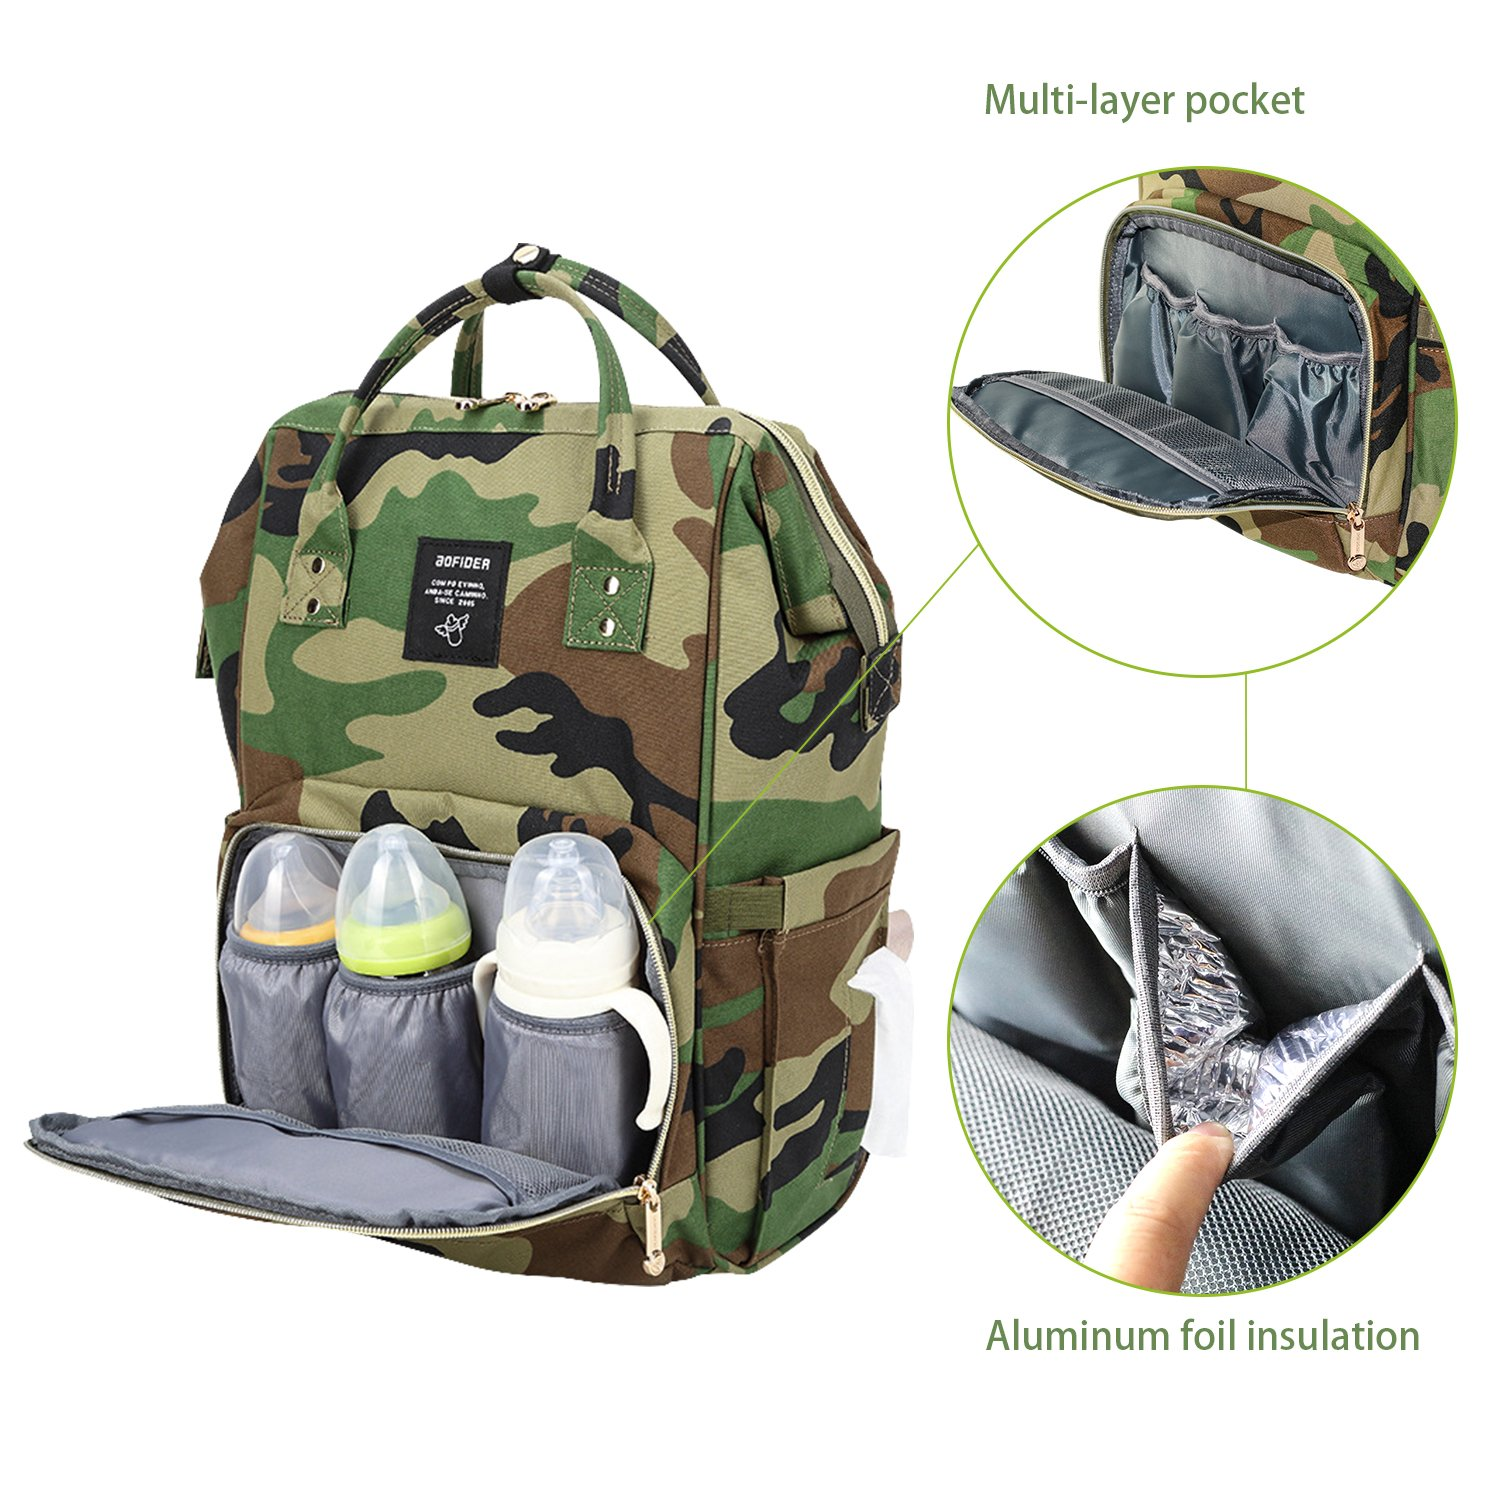 CutePaw Multi-Function Baby Diaper Bag Backpack Waterproof Camouflage//Solid Nappy Bag Large Capacity Travel Backpack